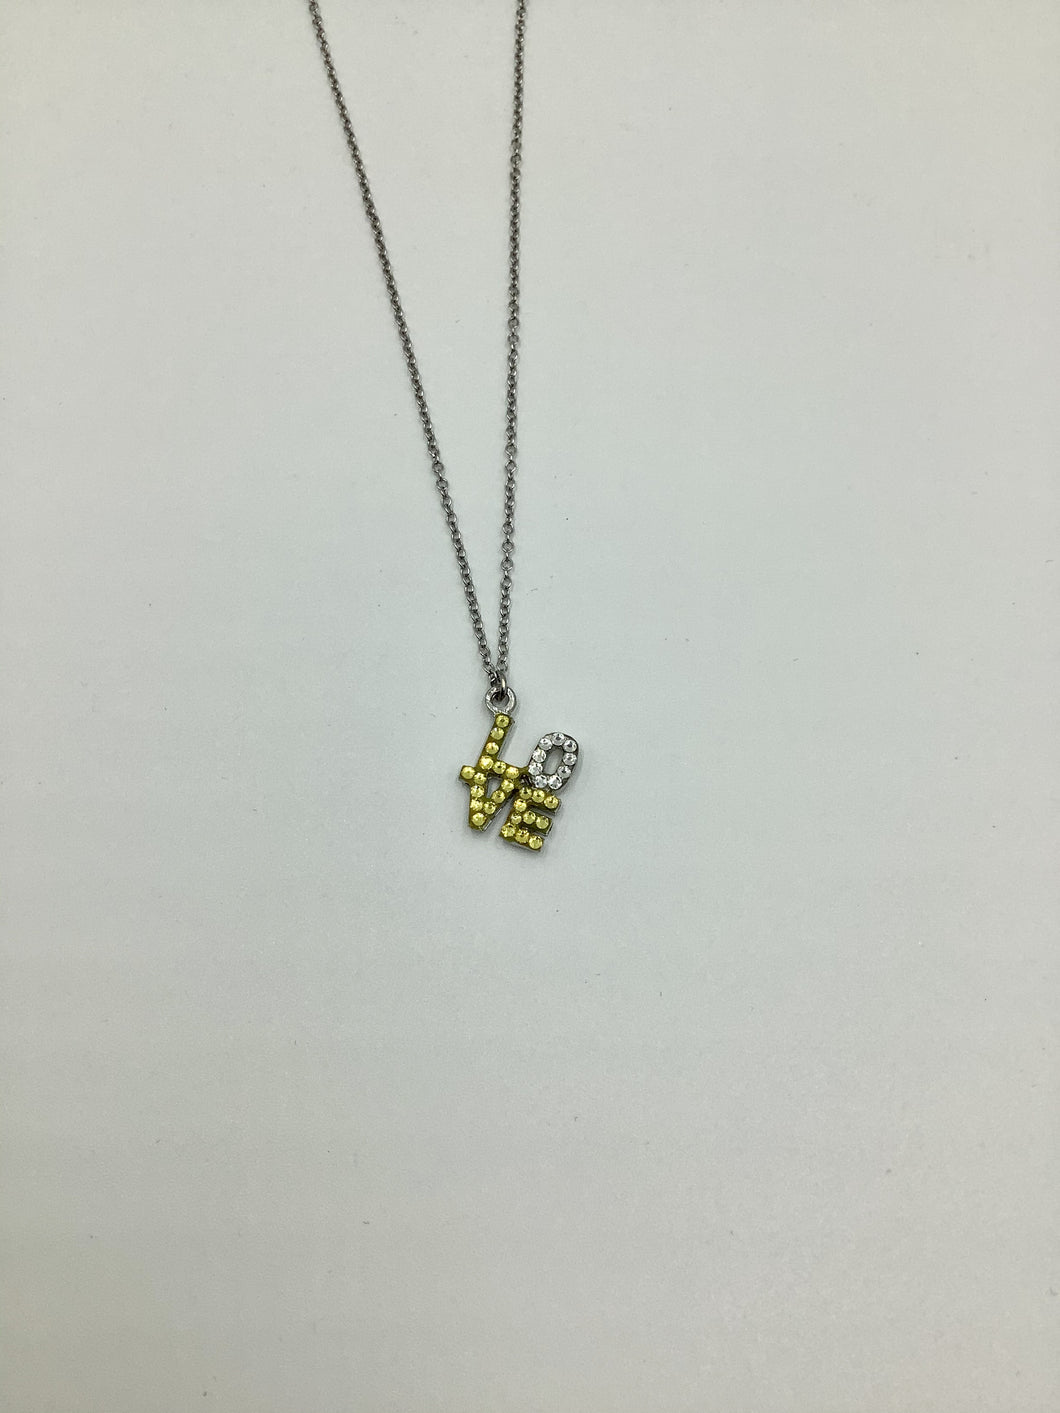 Emily Austin Love Necklace - Yellow and Silver Crystal